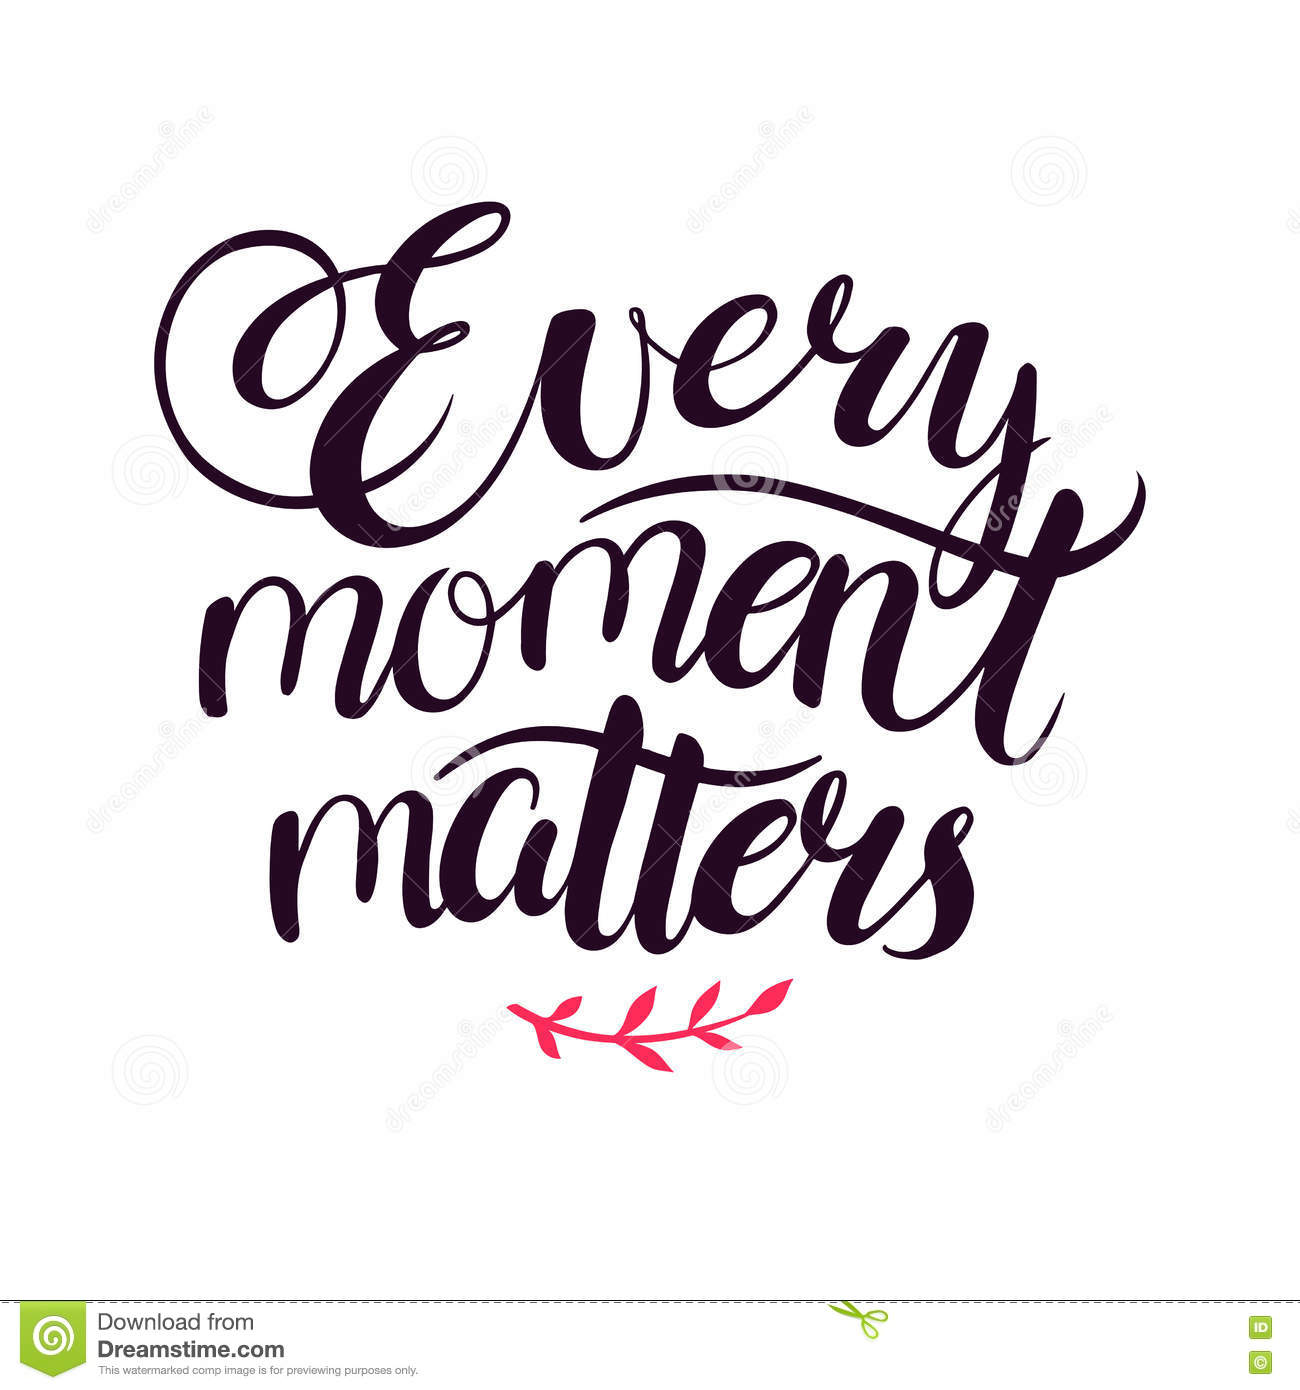 every of moment_Every moment matters stock vector. Illustration of moment - 78549994